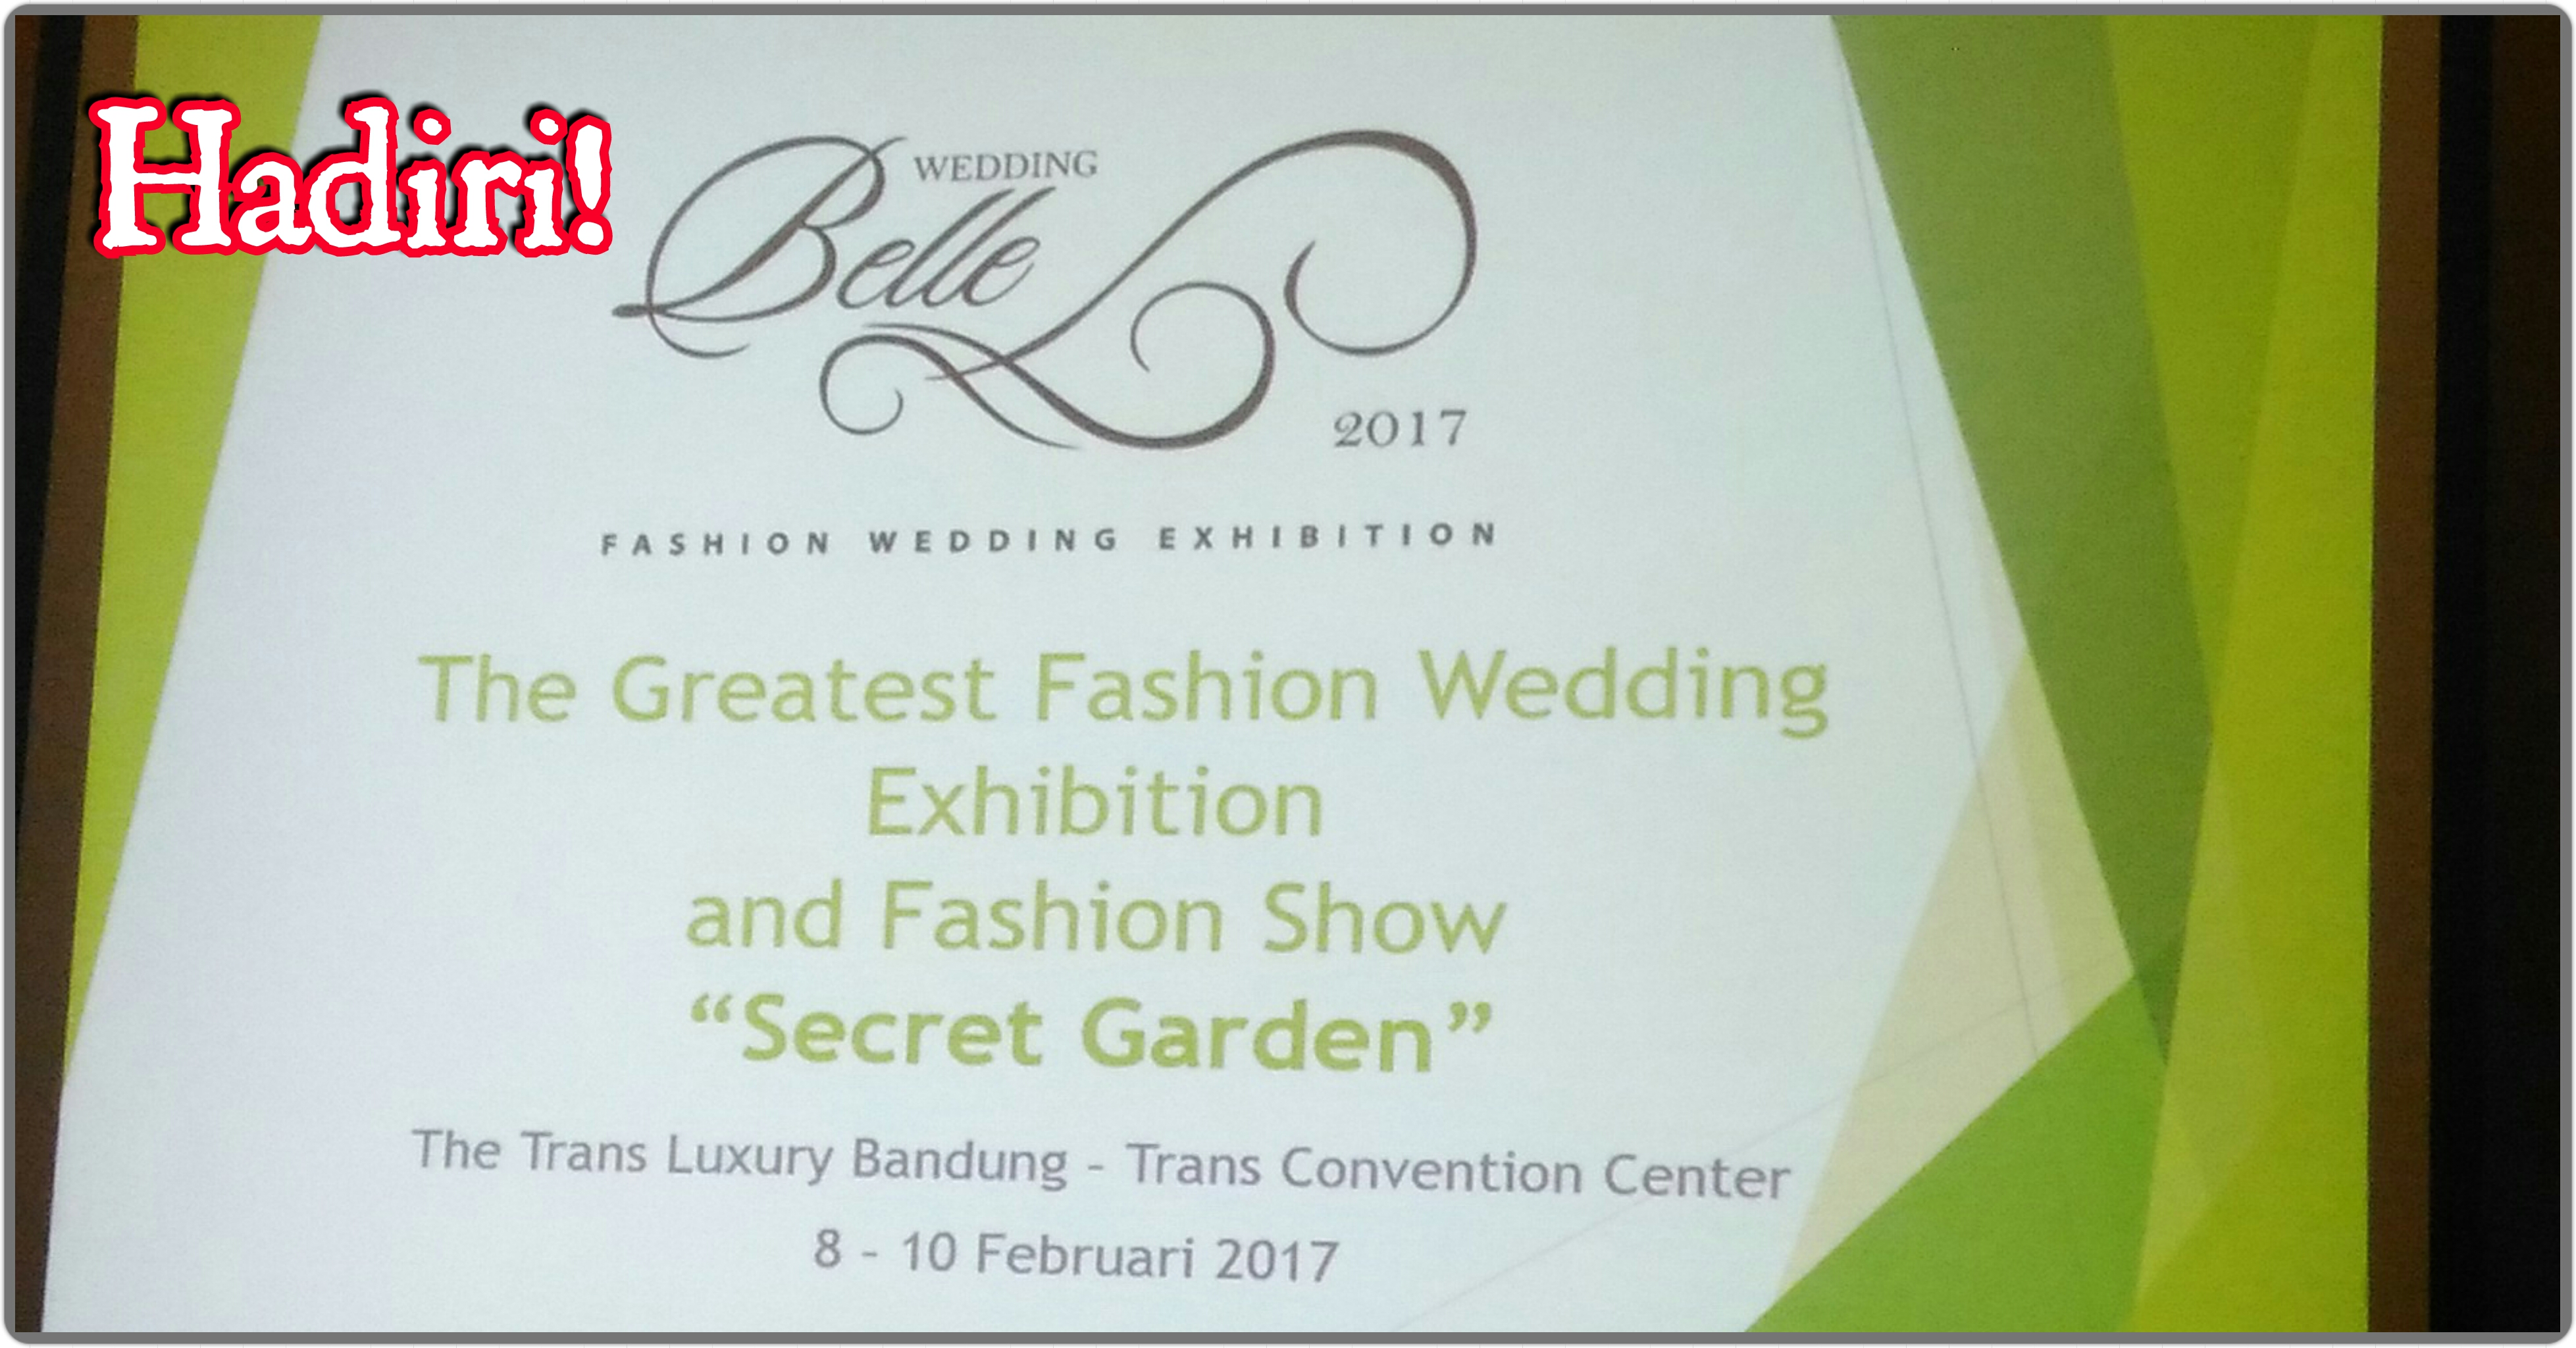 coverweddingbelle2017